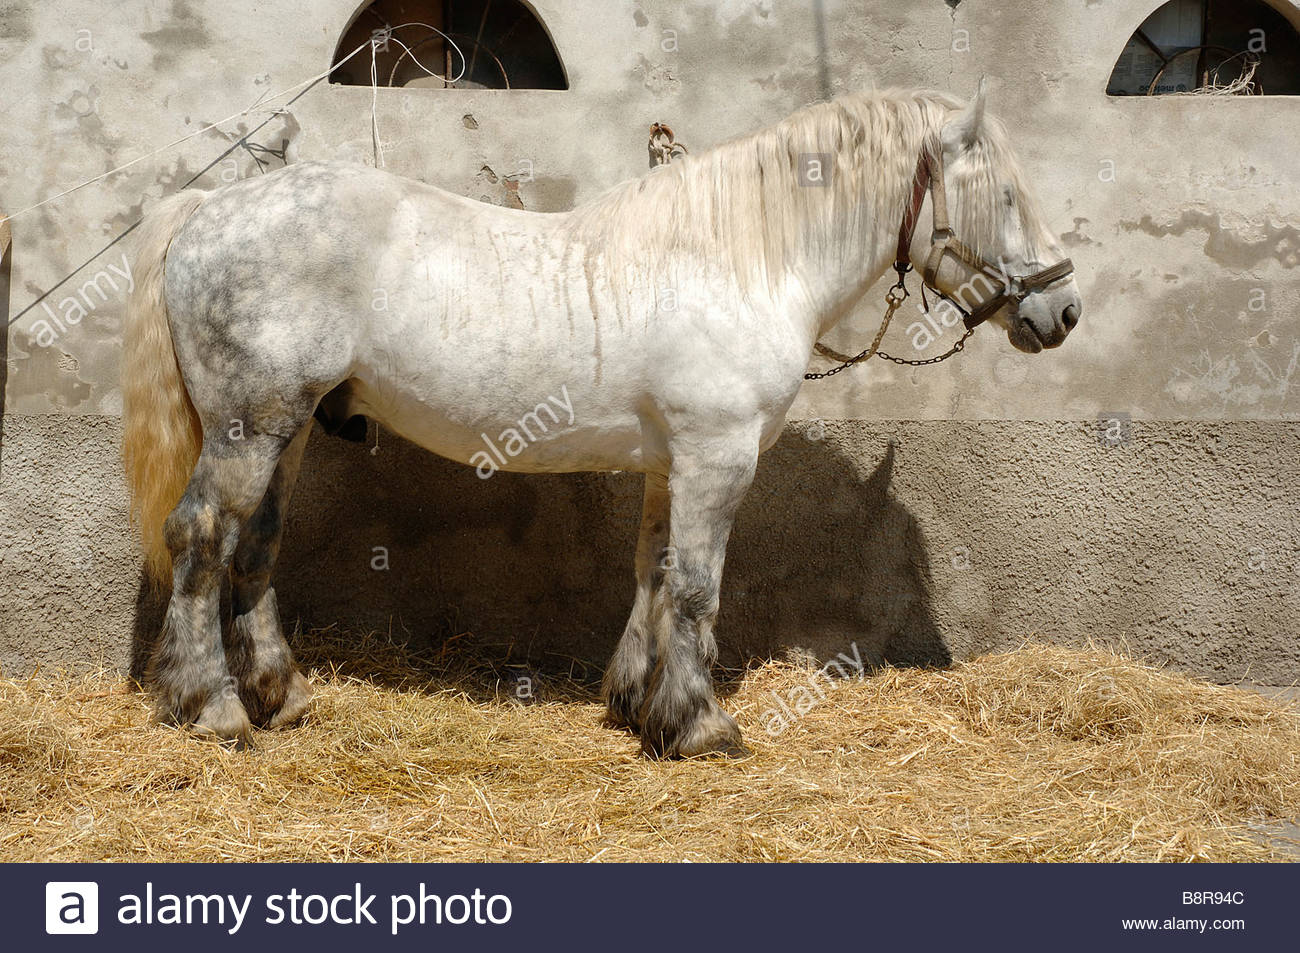 draught horse - Stock Image